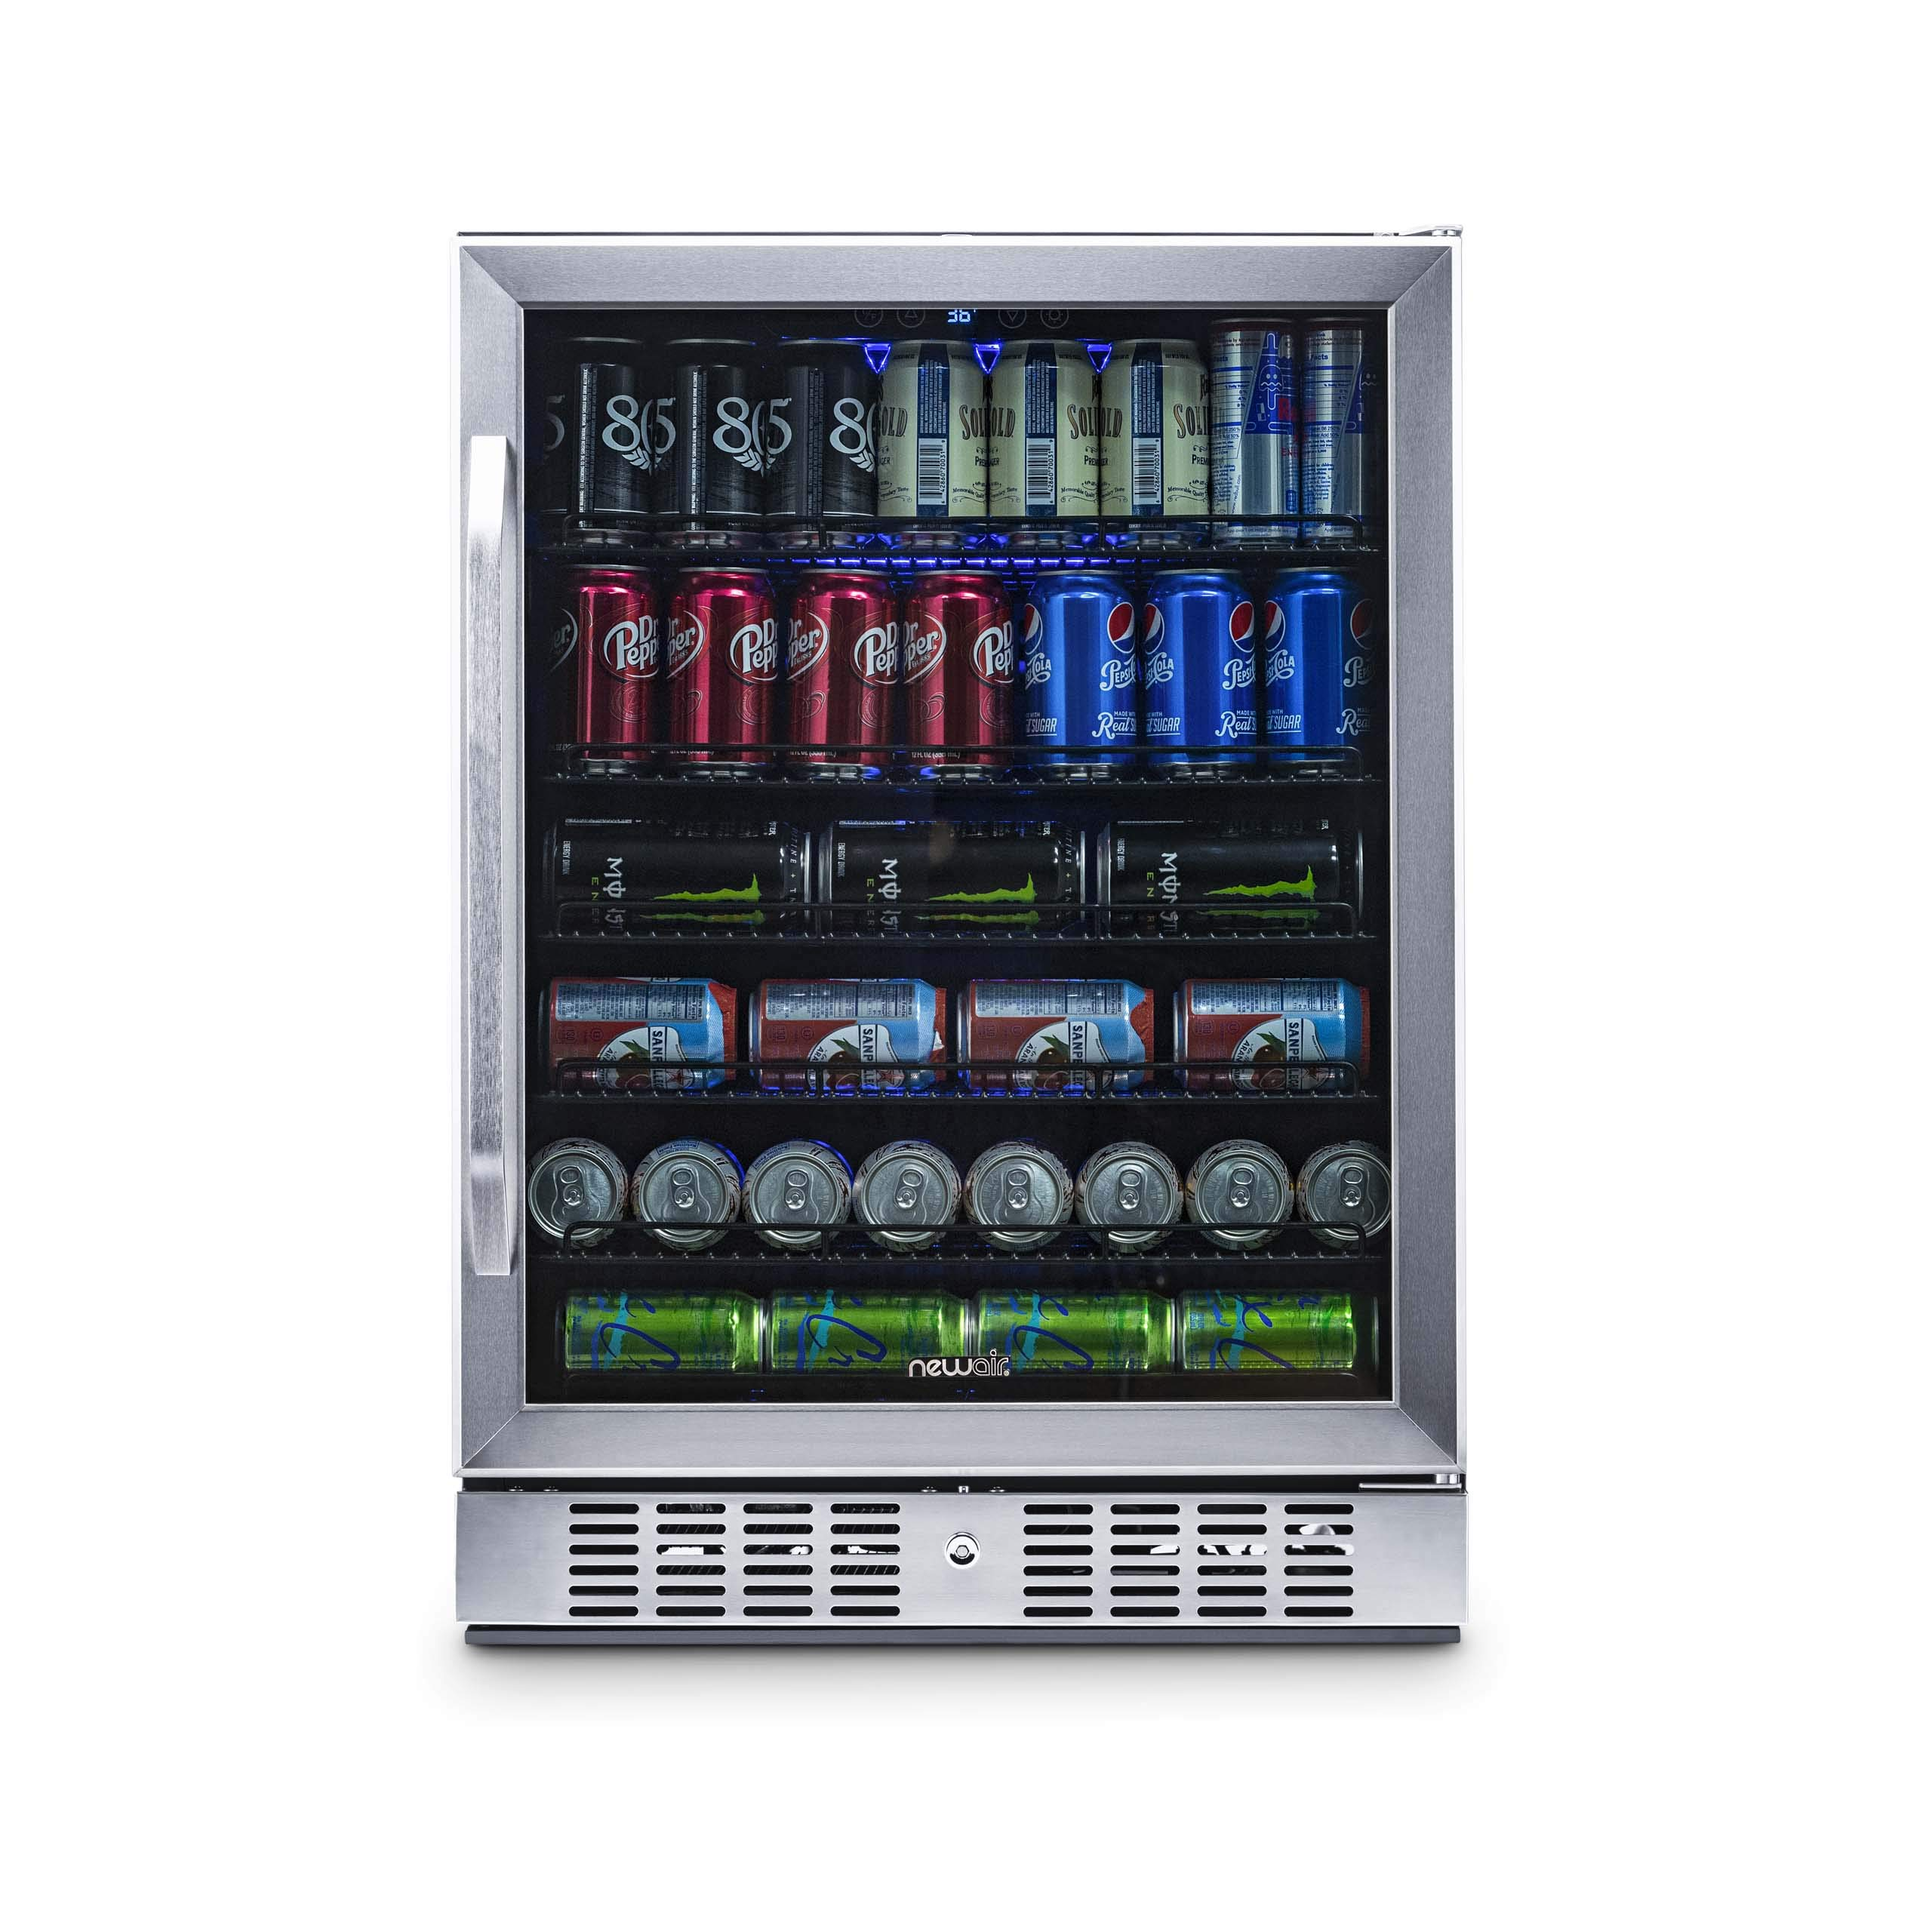 NewAir Built-In Beverage Cooler and Refrigerator, Stainless Steel Mini Fridge with Glass Door,  177 Can Capacity, ABR-1770 by NewAir (Image #1)